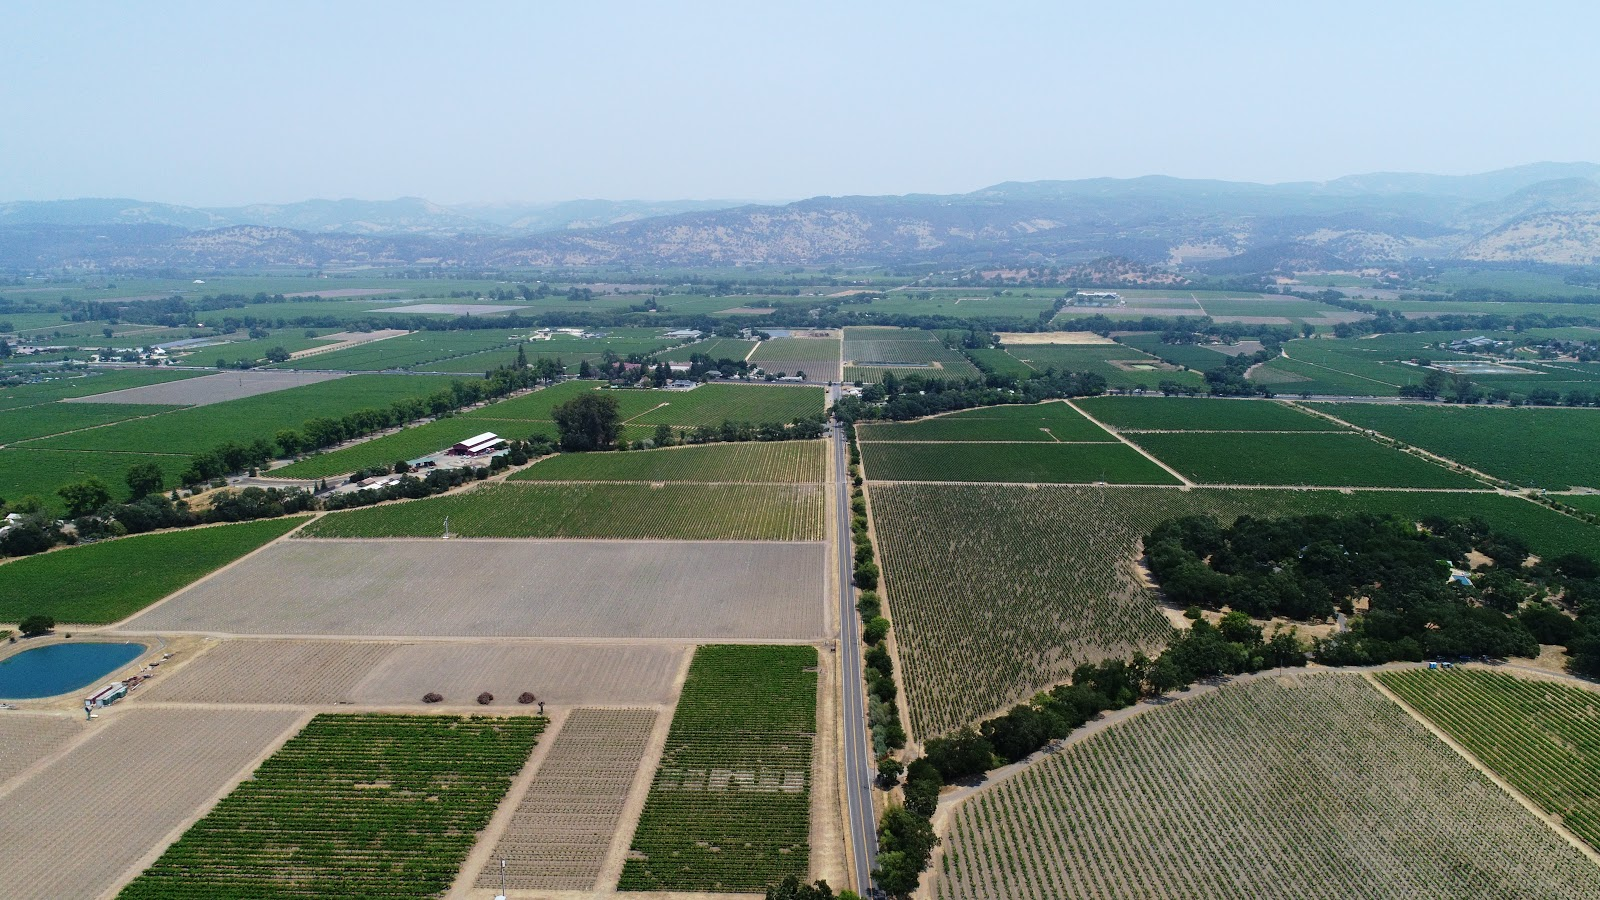 Bicycle climb up Oakville Grade Road - drone photo of view east towards St. Helena Highway- vineyards and roadway.